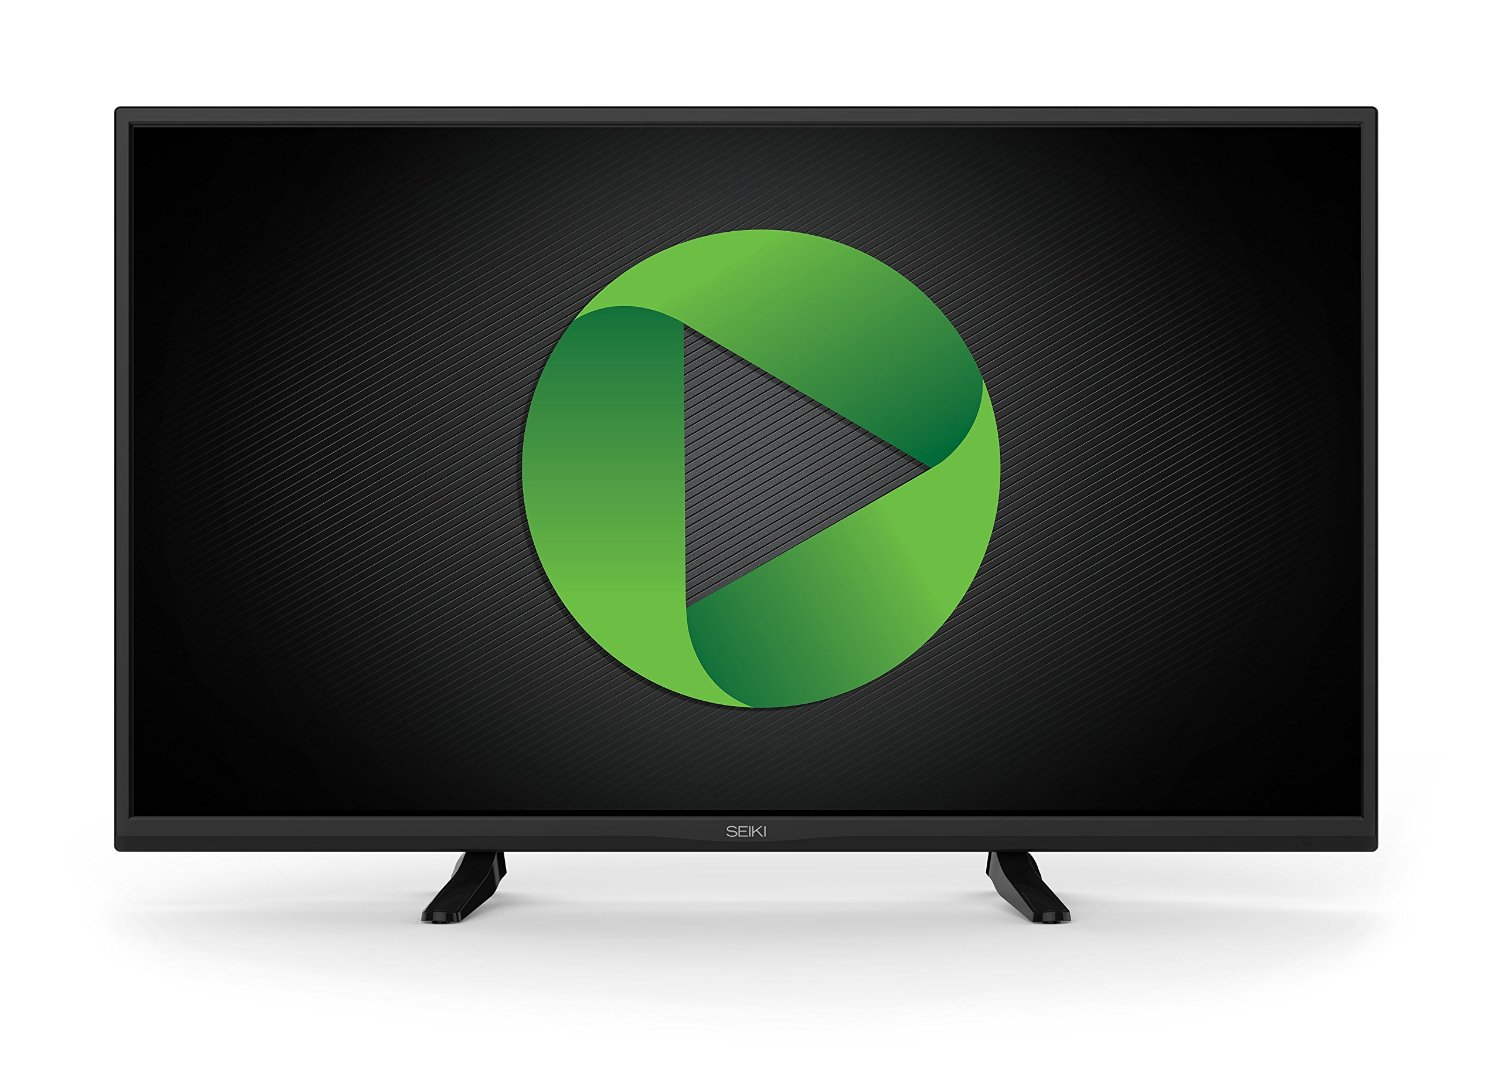 Seiki SE32HYT 32-Inch 720p LED TV (2015 Model)